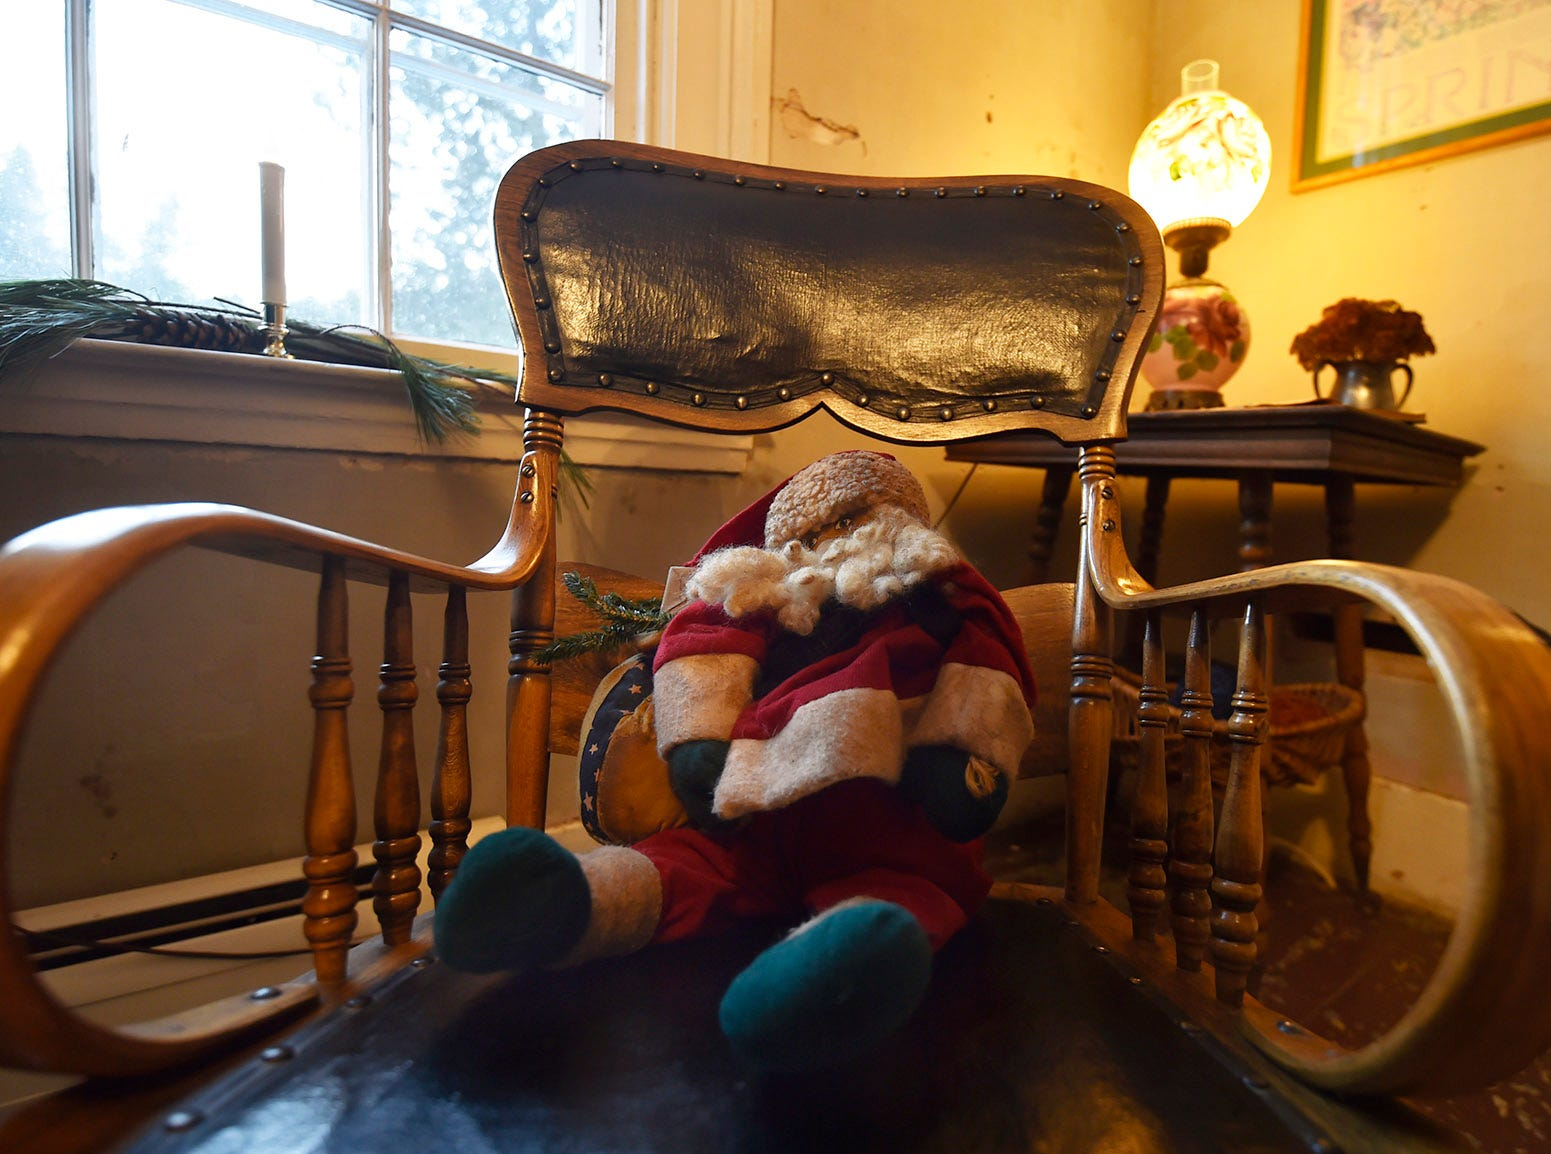 A replica of a vintage Santa sits on a bentwood rocker inside the living quarters of the upper Range Light lighthouse during Natural Christmas at The Ridges Sanctuary, Baileys Harbor, on Saturday, Dec. 8, 2018. Tina M. Gohr/USA TODAY NETWORK-Wisconsin